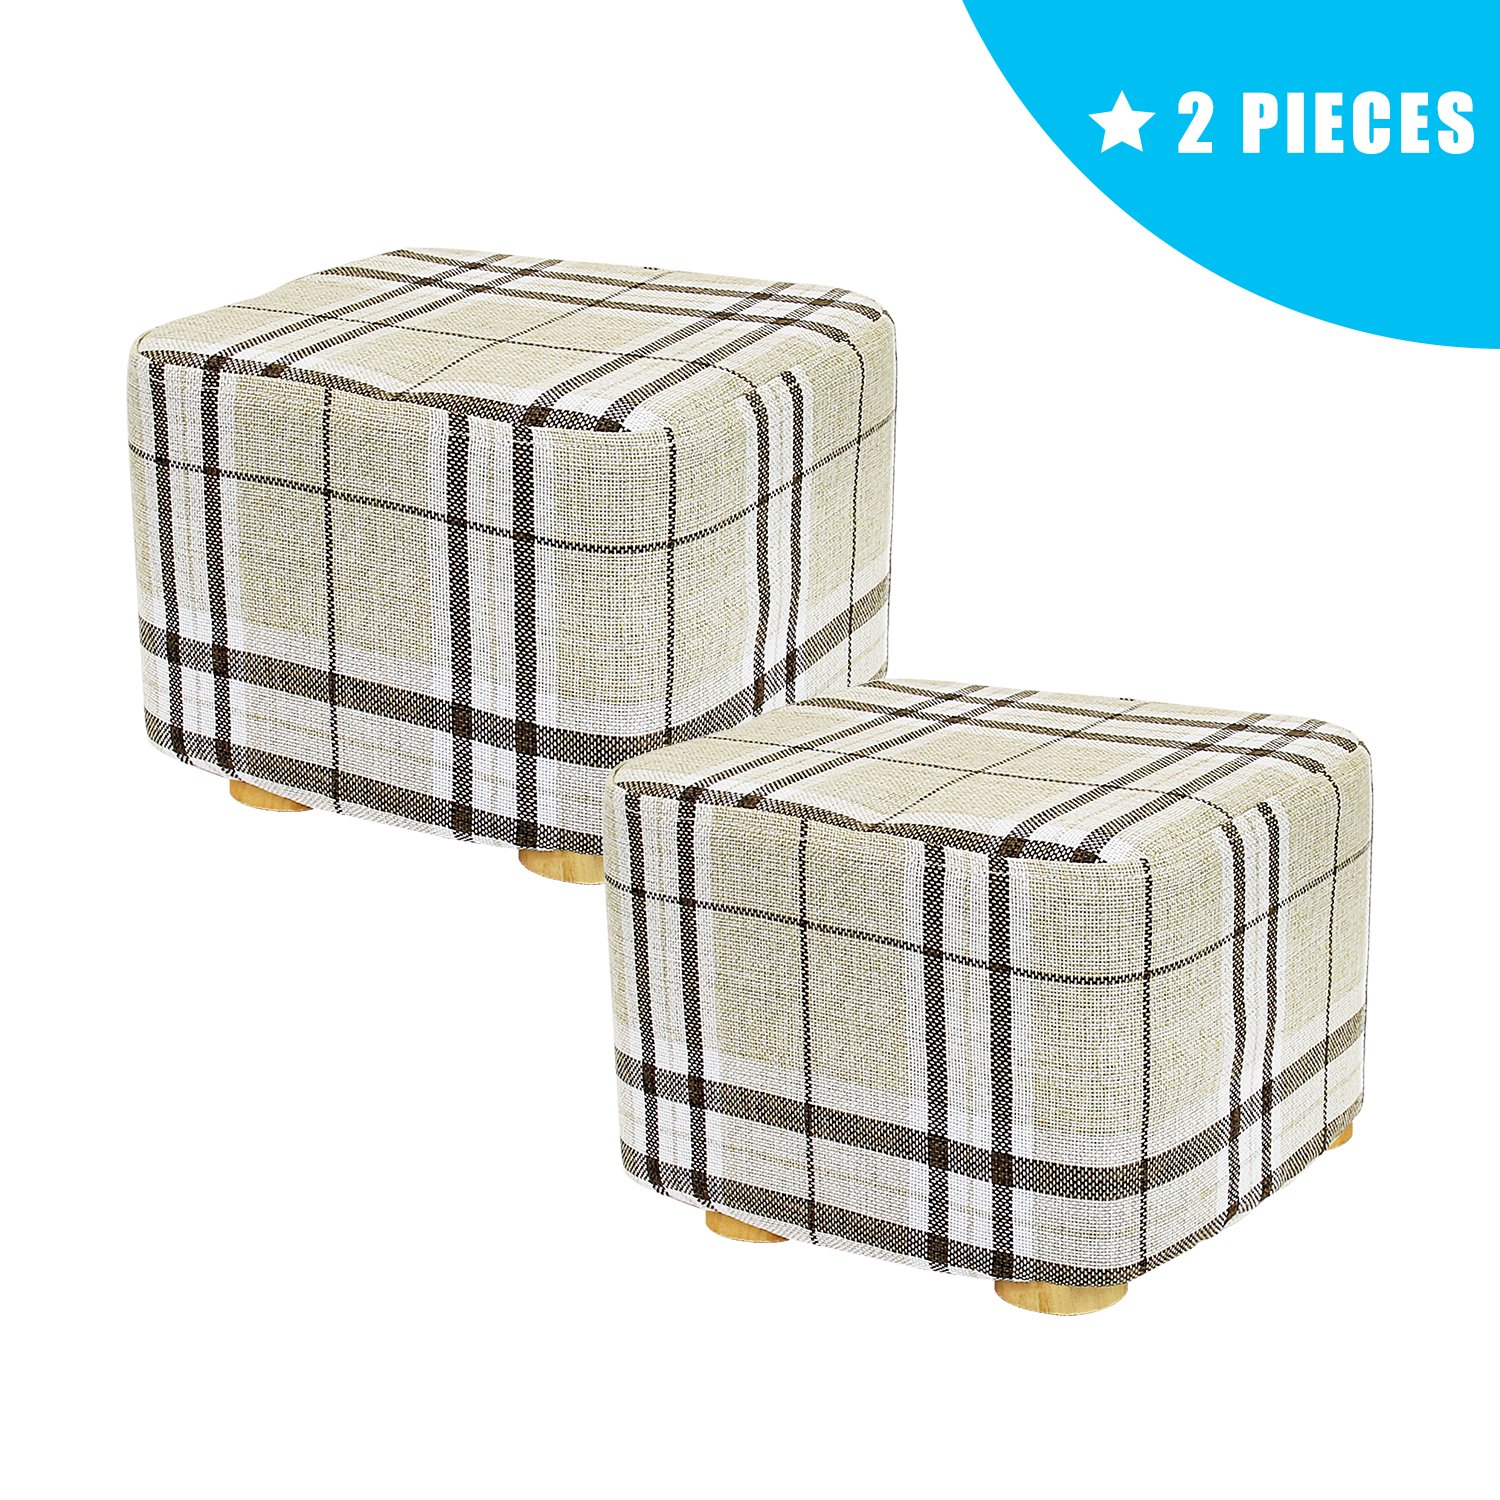 Jerry & Maggie - 2 Pieces Footstool Fabric Ottomans Bench Seat Foot Rest Step Stool with Feet Protection Design | Cubic - Short 4 Leg - Striped Cover